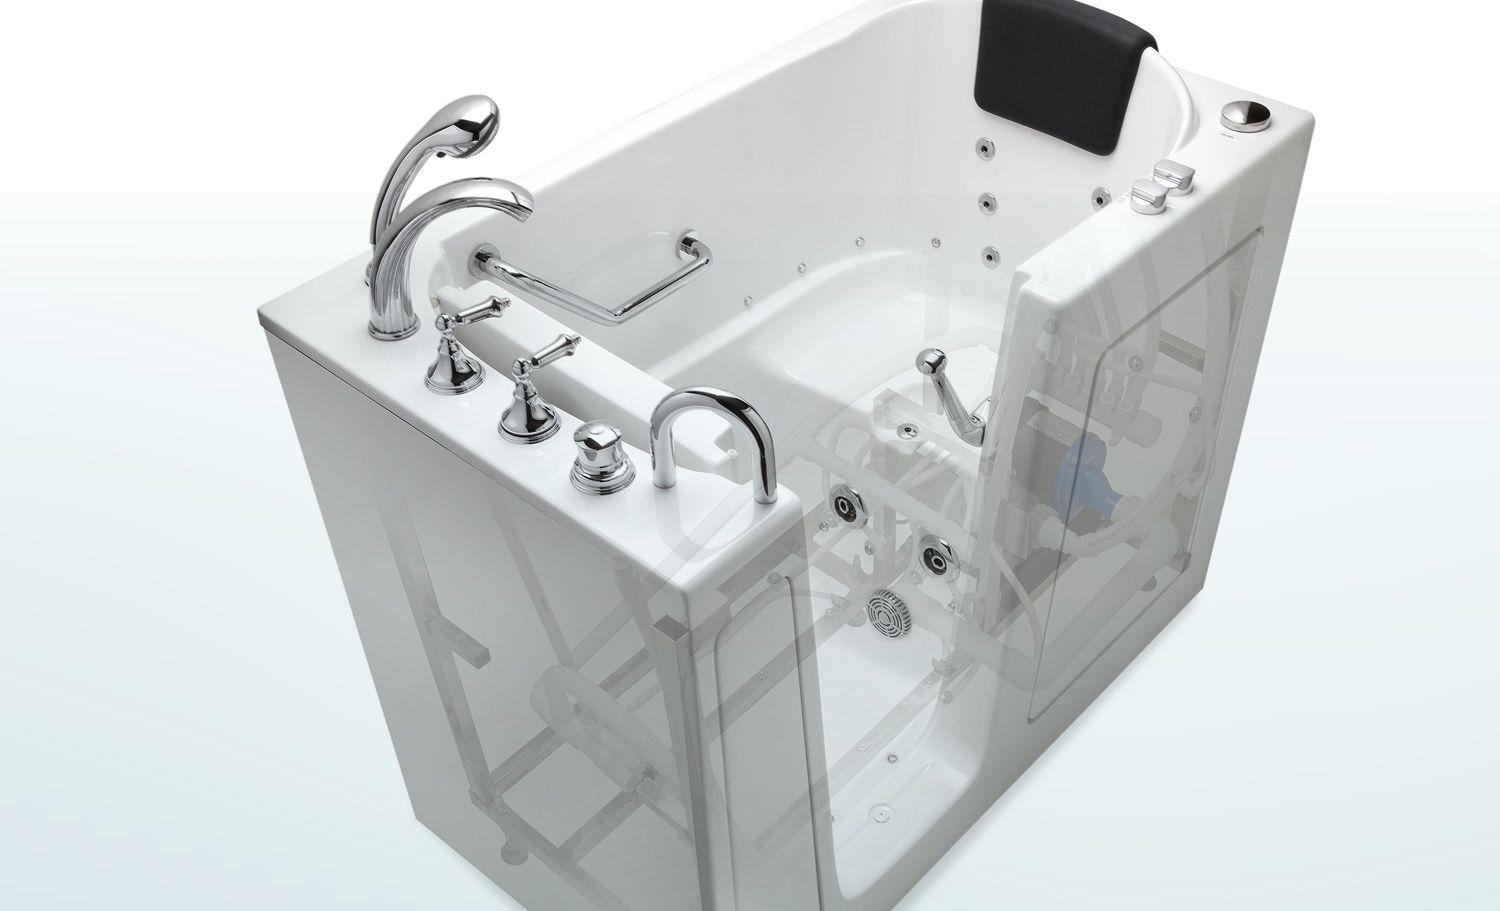 American Tubs Adds MicroBubbles by CG Air to List of Features